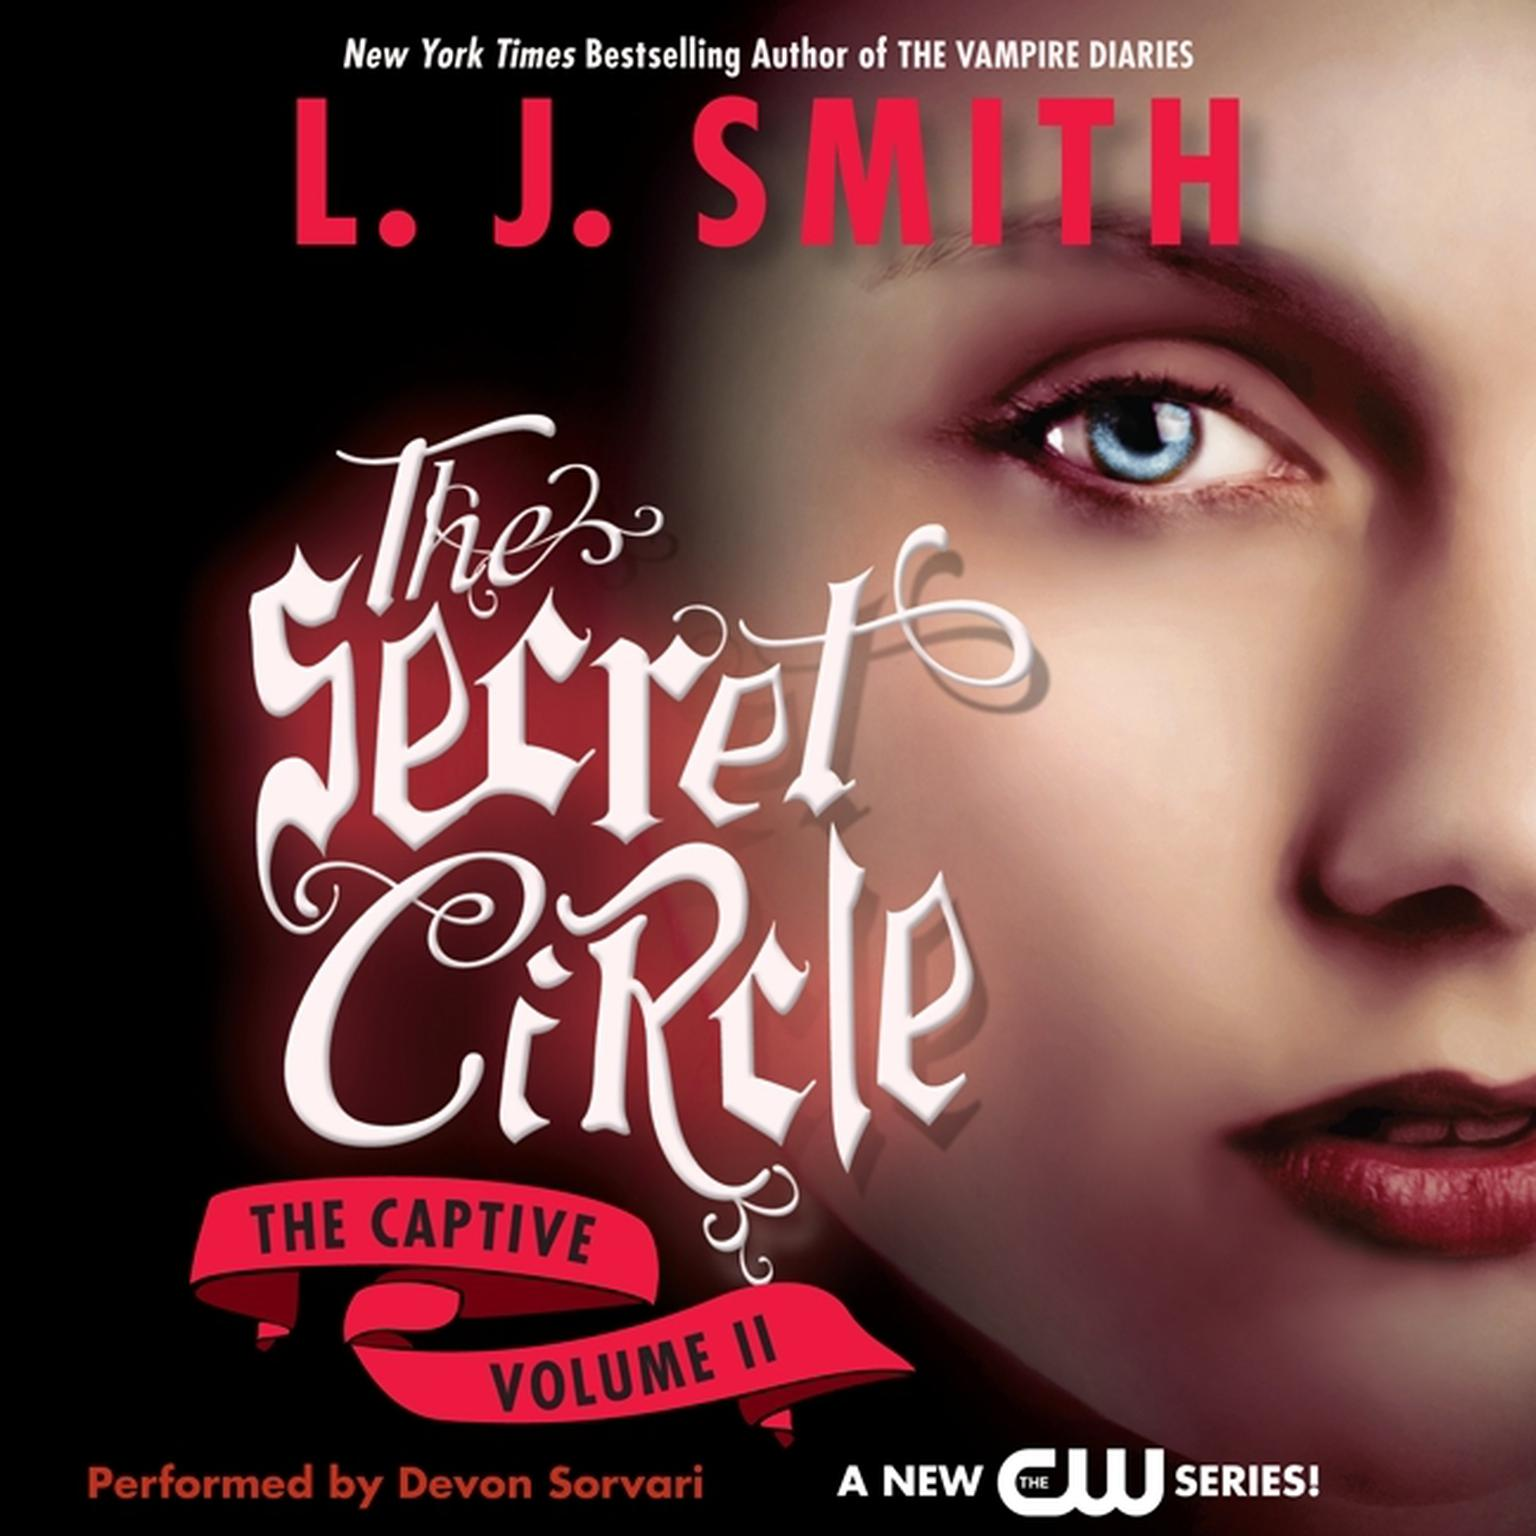 Printable Secret Circle Vol II: The Captive: The Secret Circle Vol. II Audiobook Cover Art